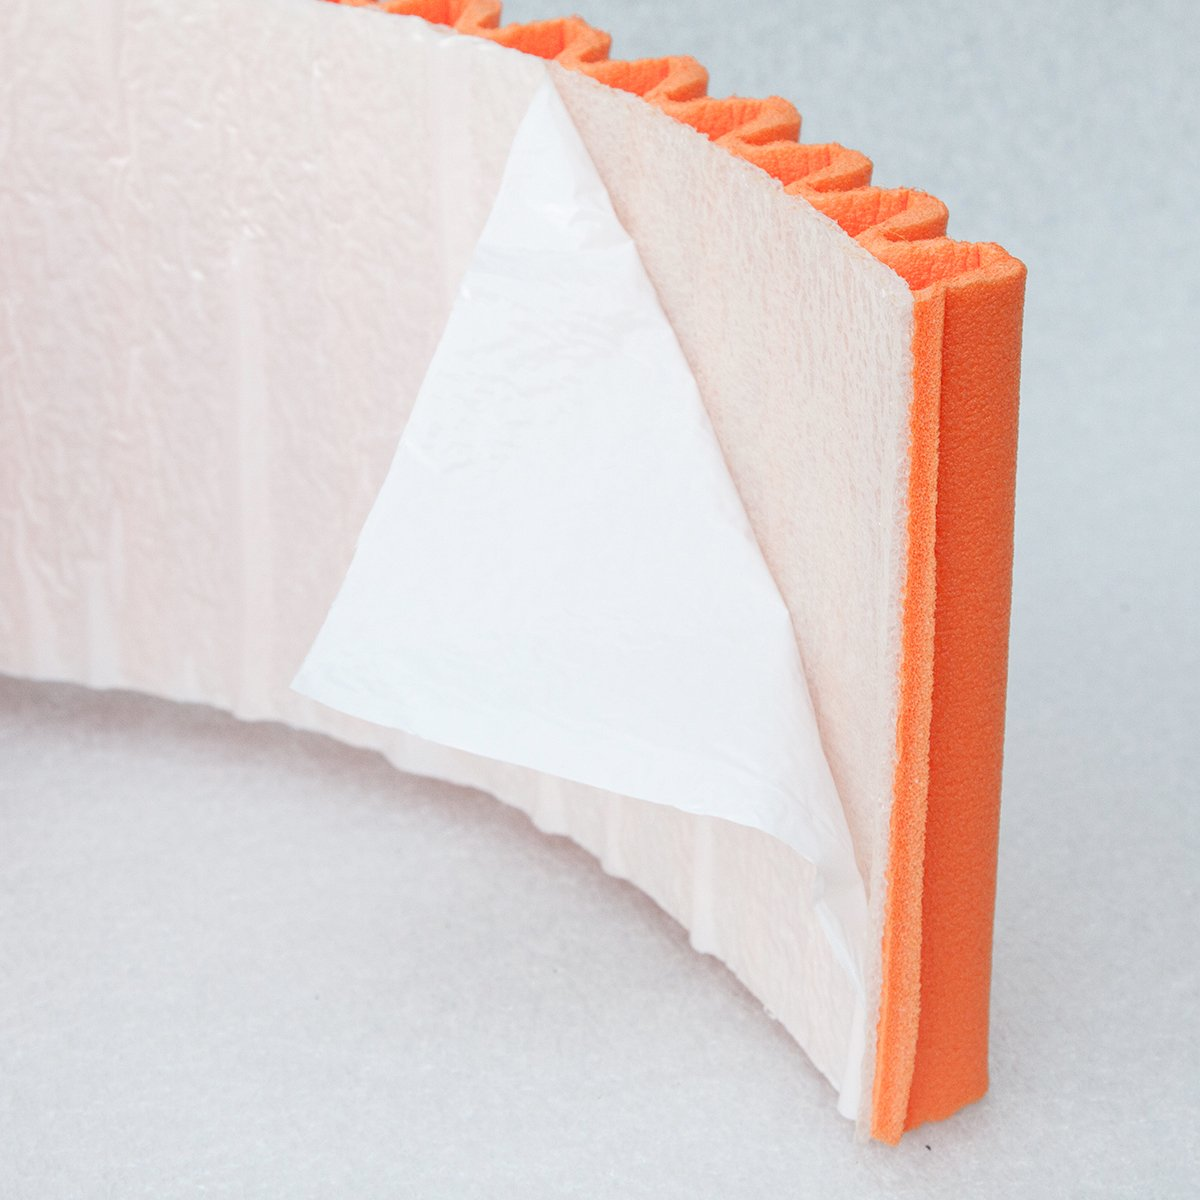 A bumper protection on walls mondaplen portiere car foam auto a bumper protection on walls mondaplen portiere car foam auto adhsives protective padding any surface in the home or office utilises gnral on garage rubansaba